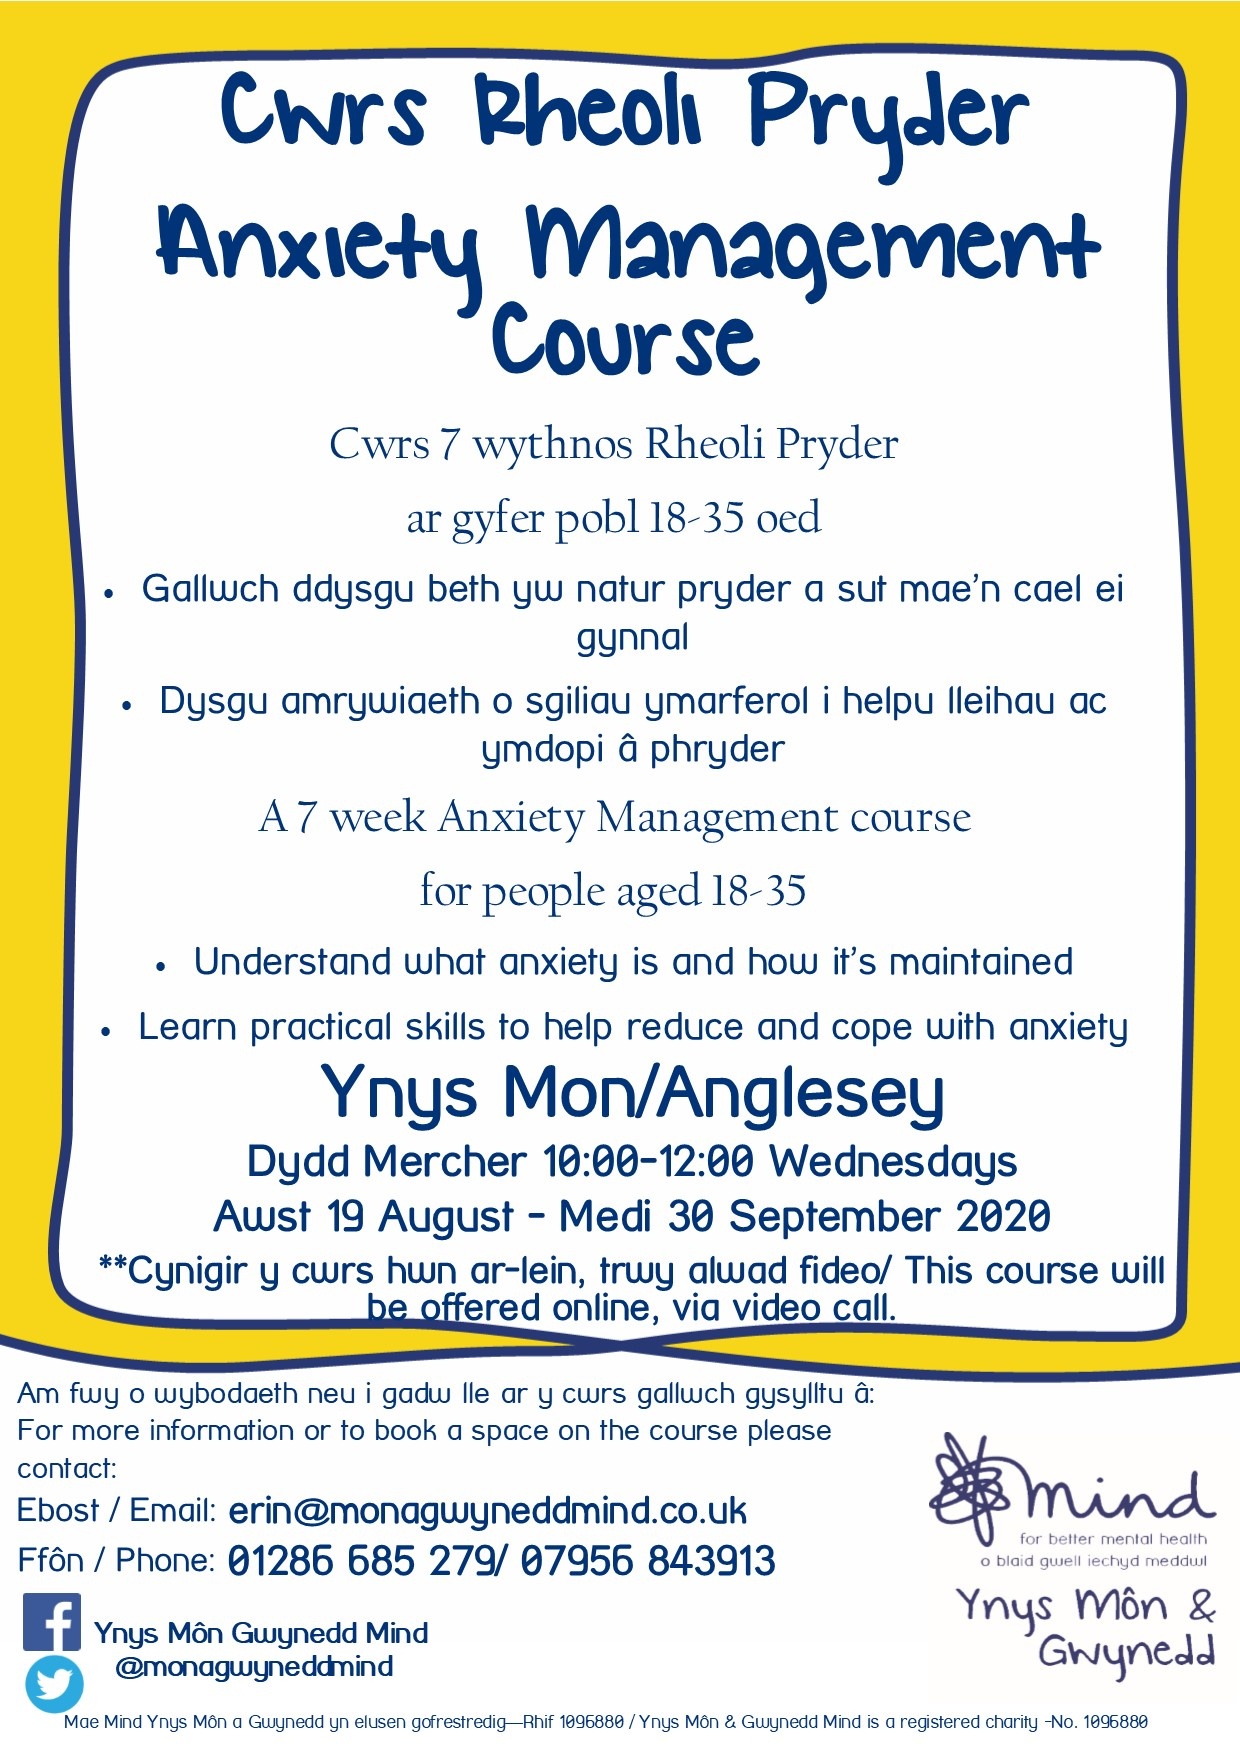 anxiety management course.  A 7 week anxiety management course for people aged 18-35